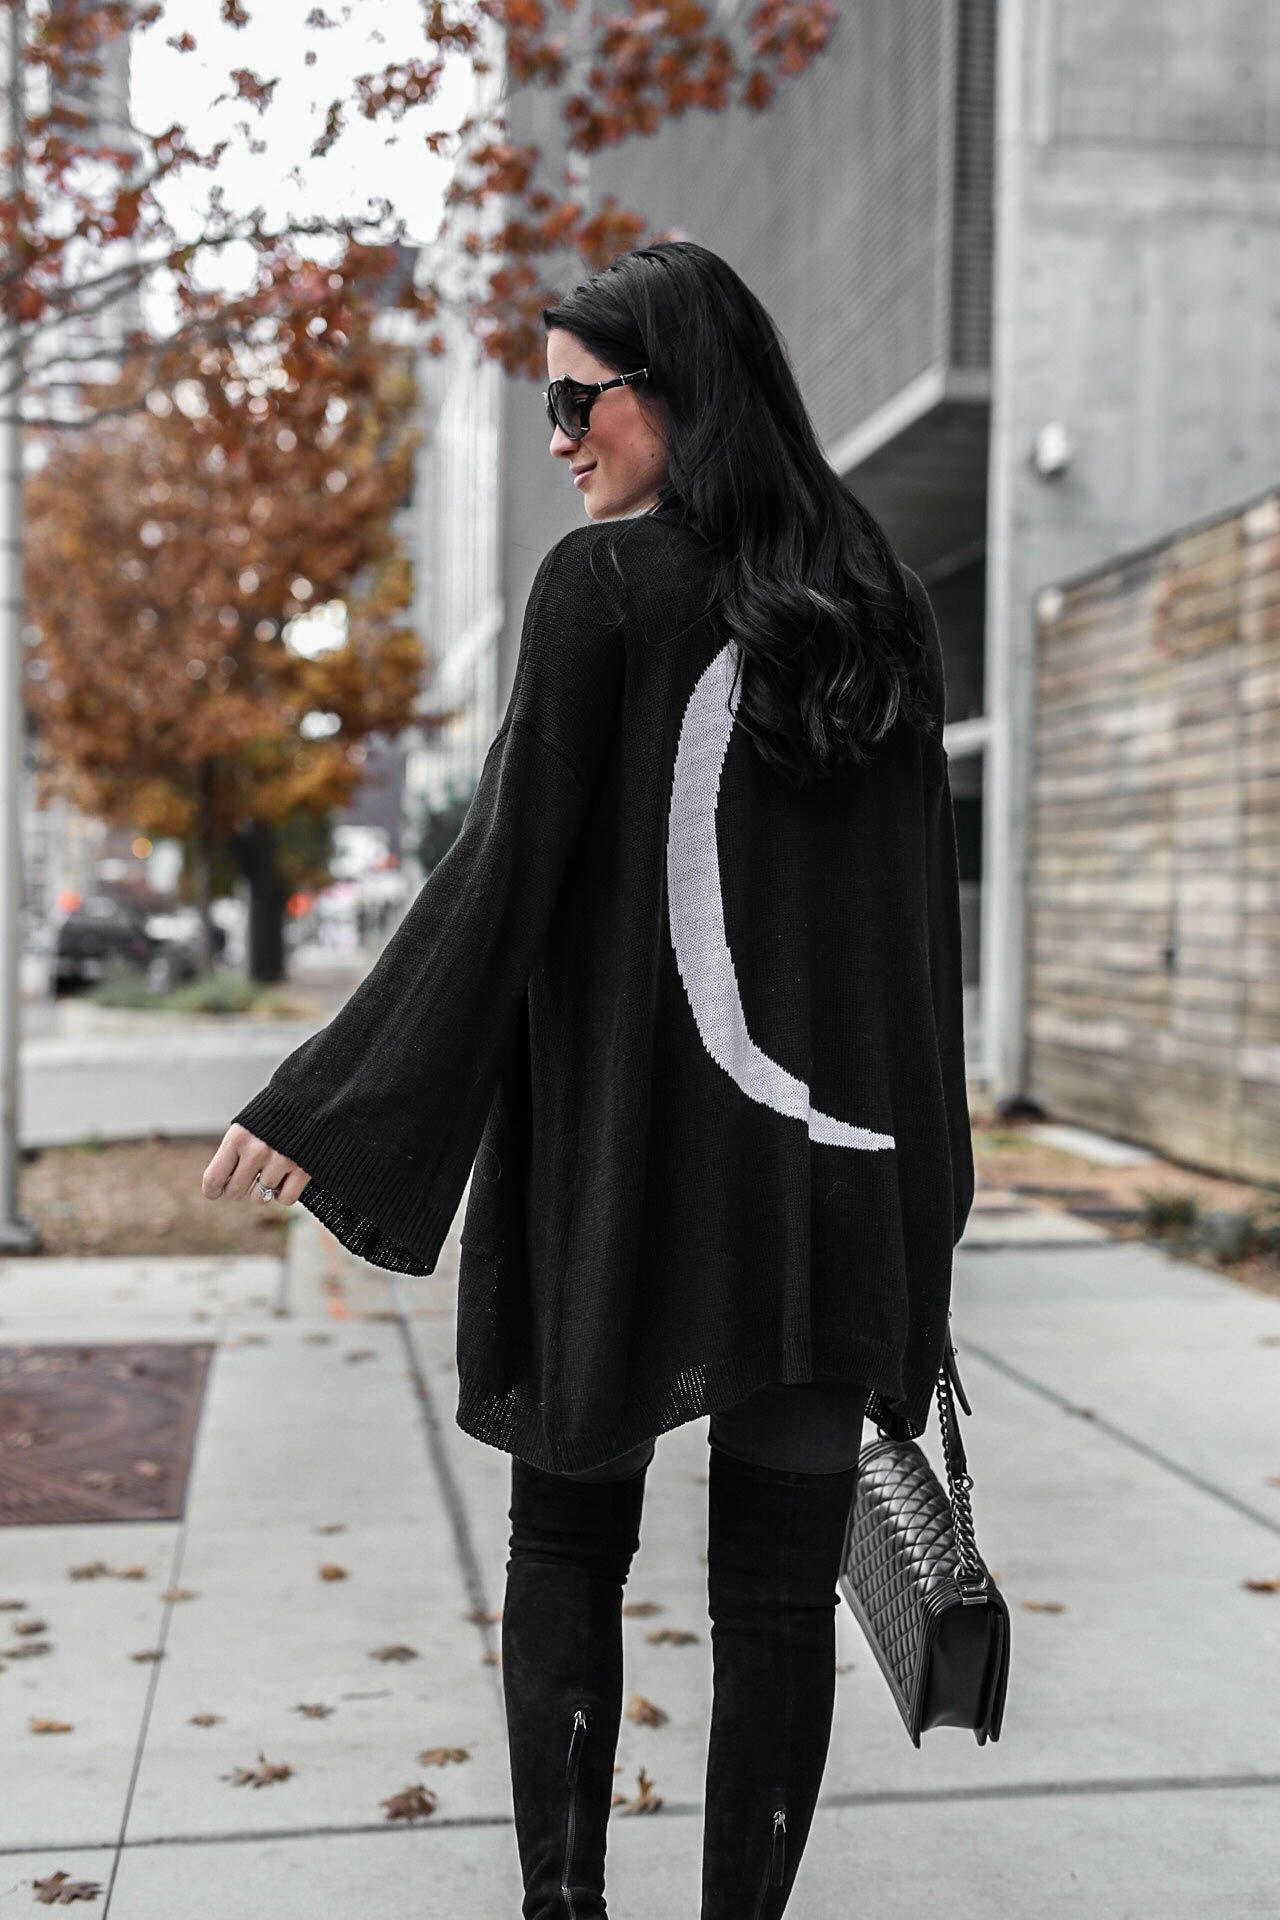 DTKAustin shares how to pull off an all black look as well as why she has 76bdd38ea6